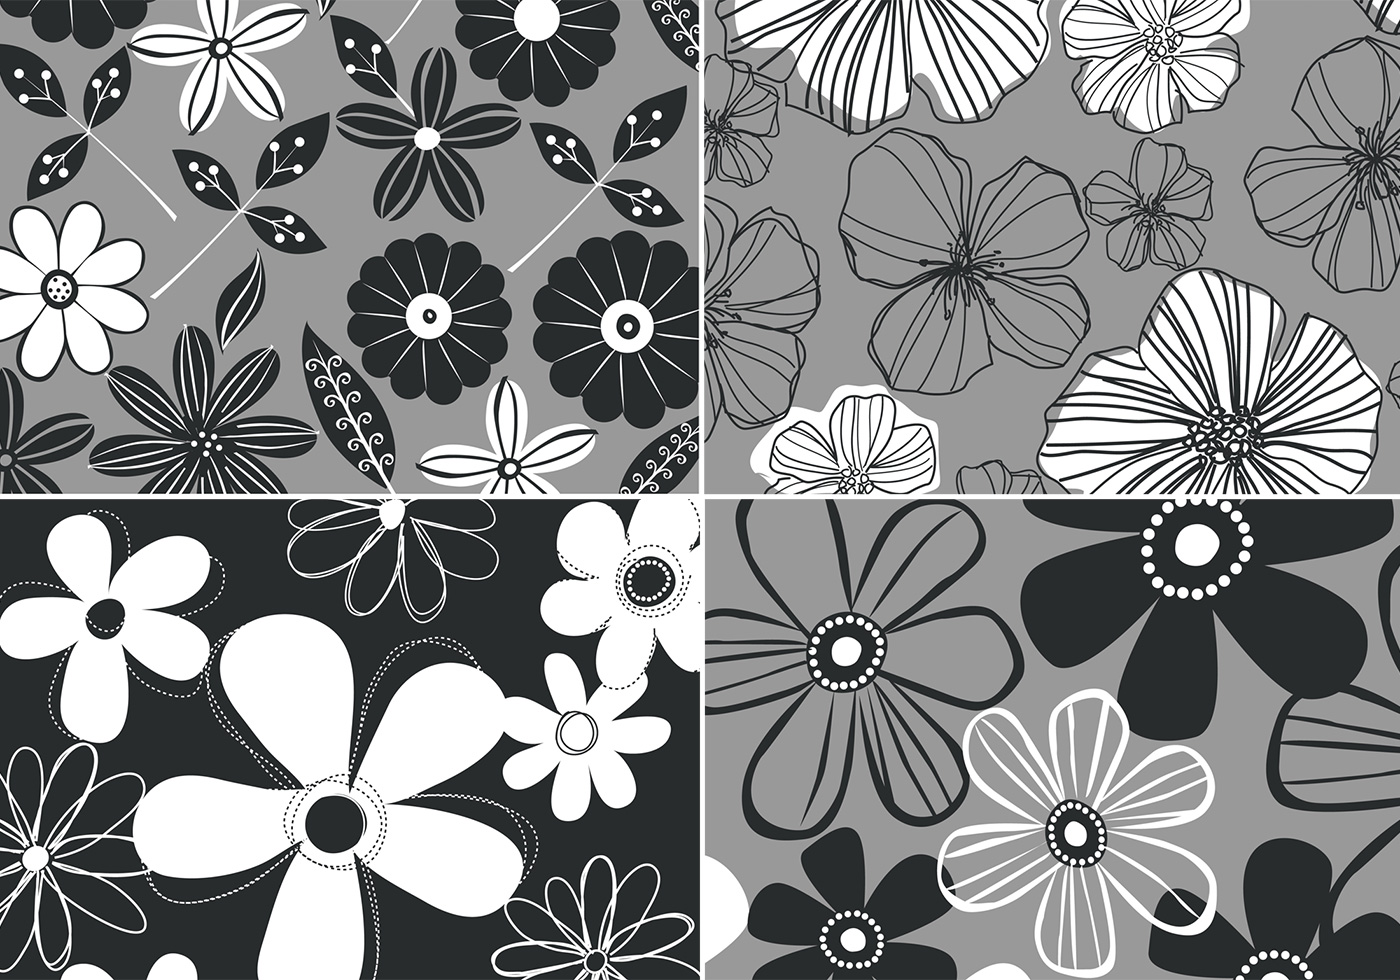 black and white retro floral background four pack free photoshop brushes at brusheezy - Floral Backgrounds